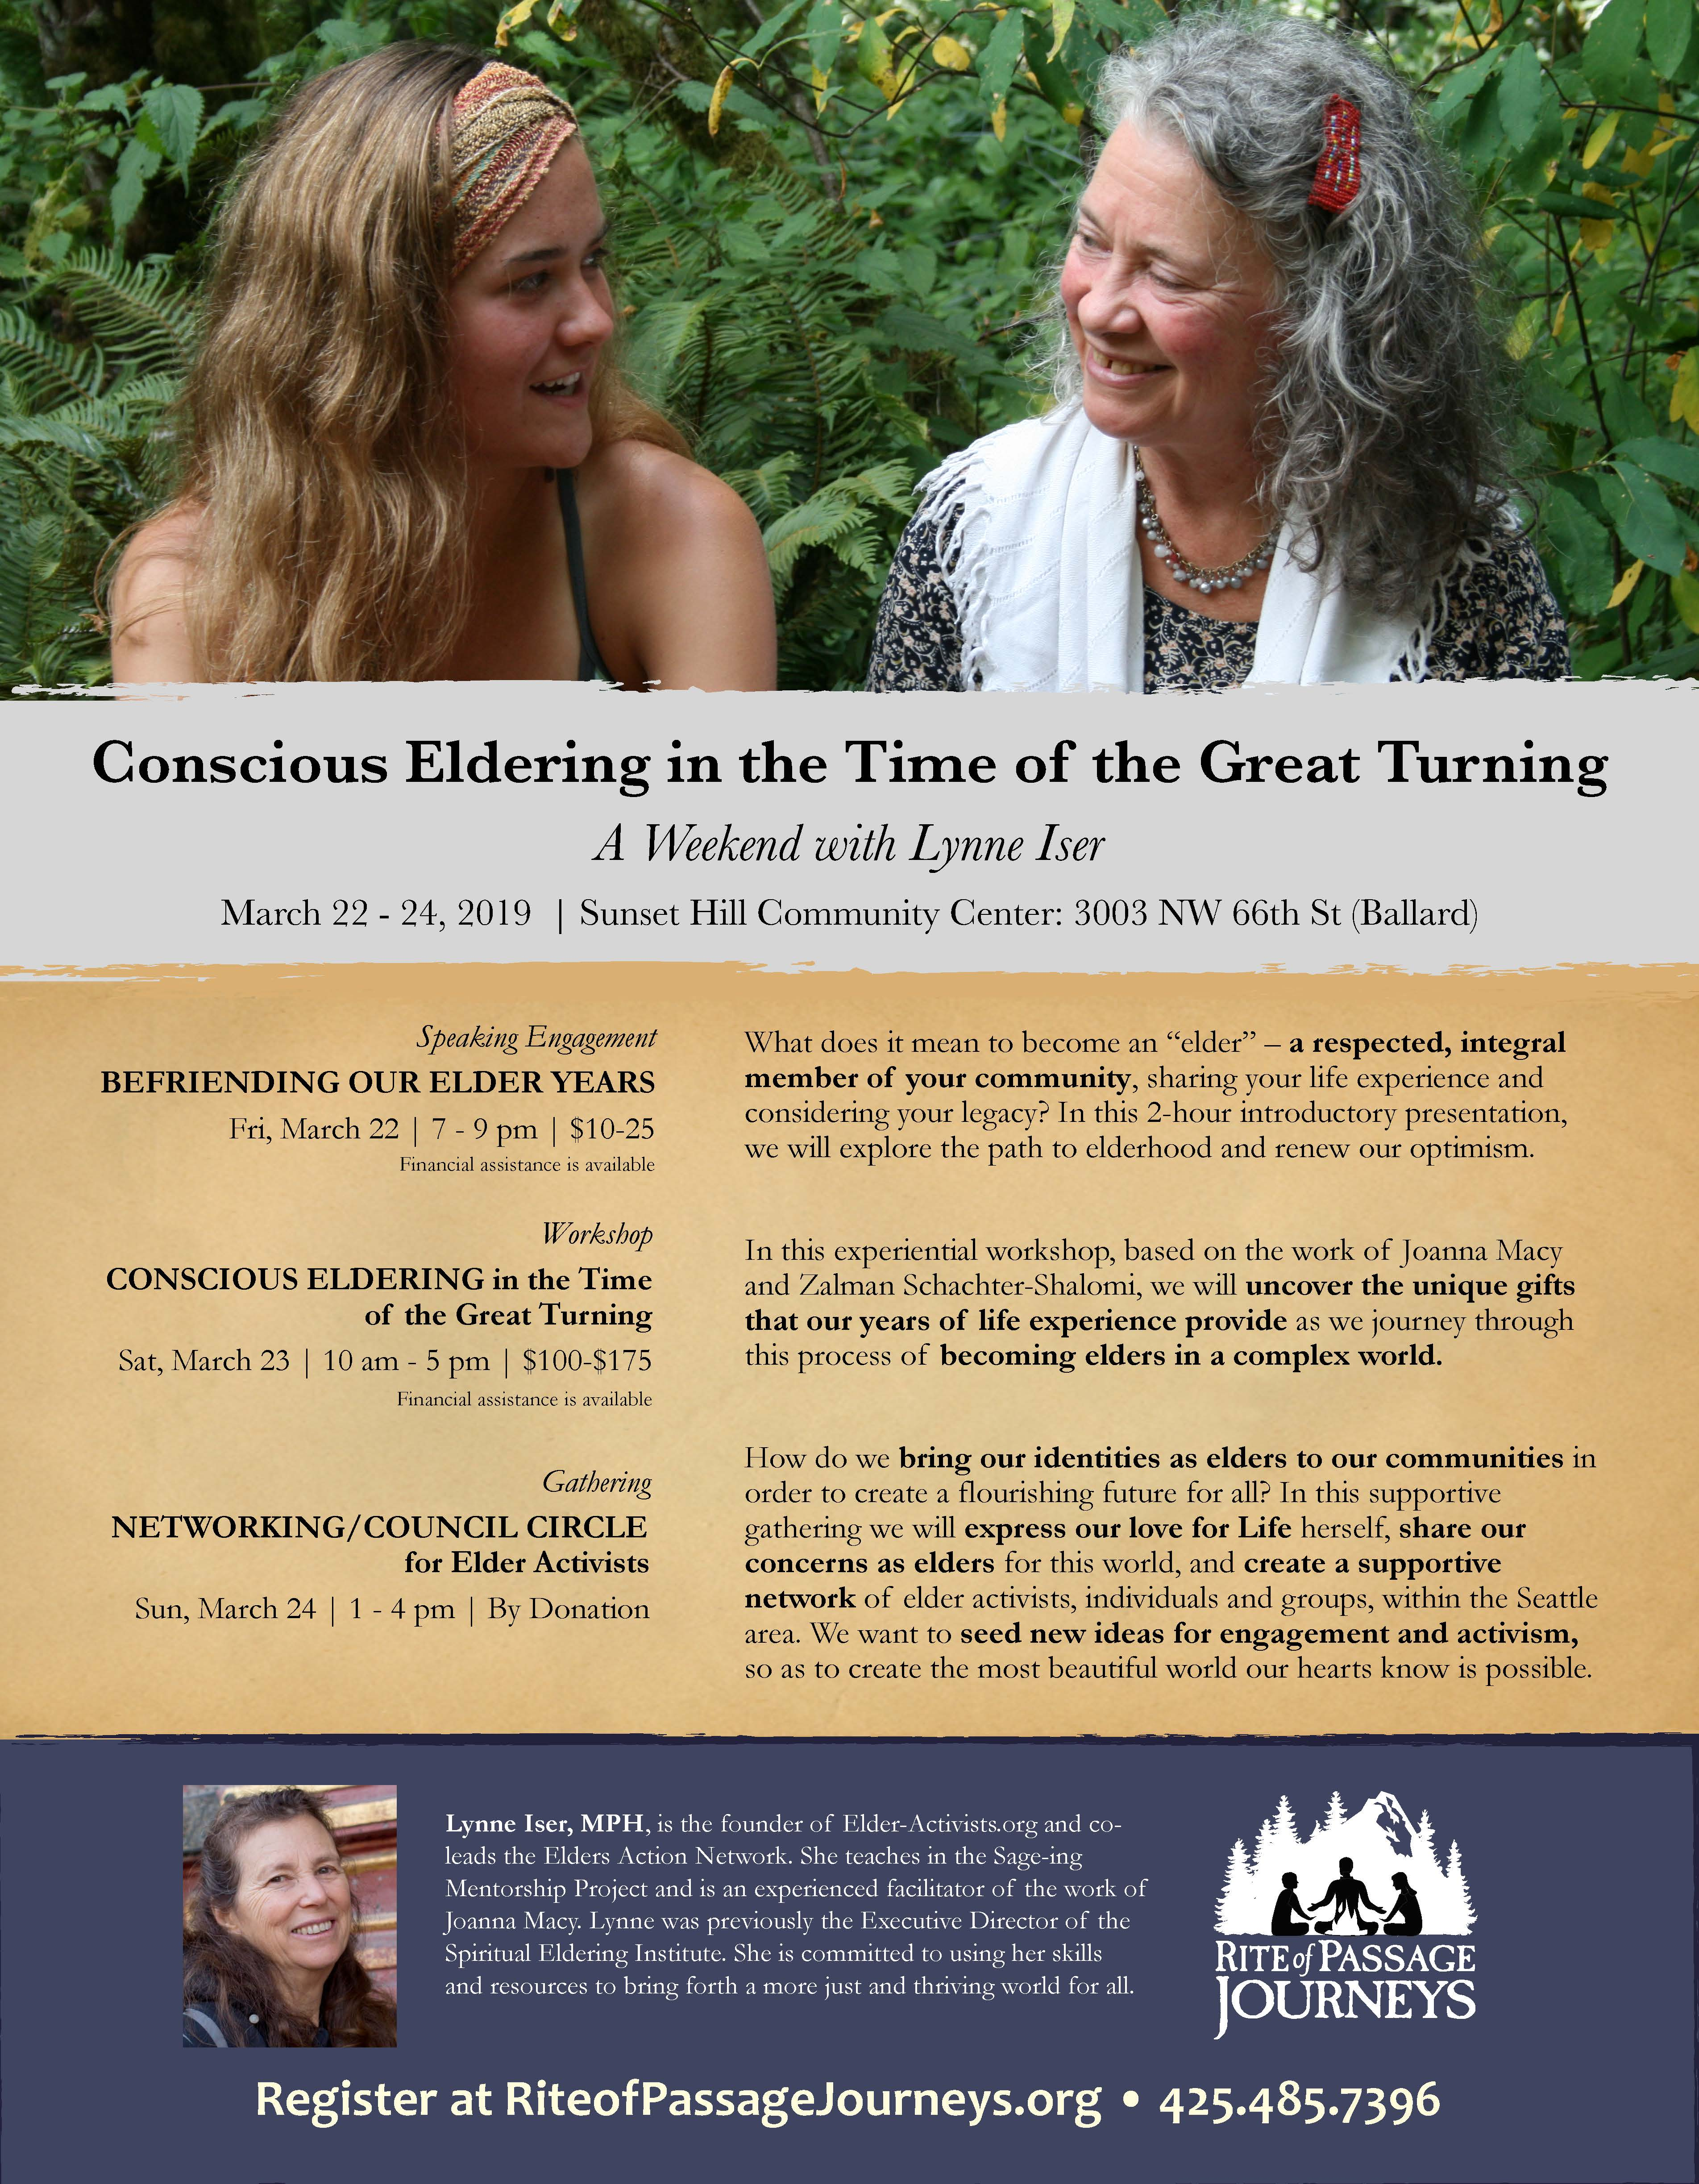 Poster for Conscious Eldering in the Time of the Great Turning. Photo of older and younger women sitting together outside.